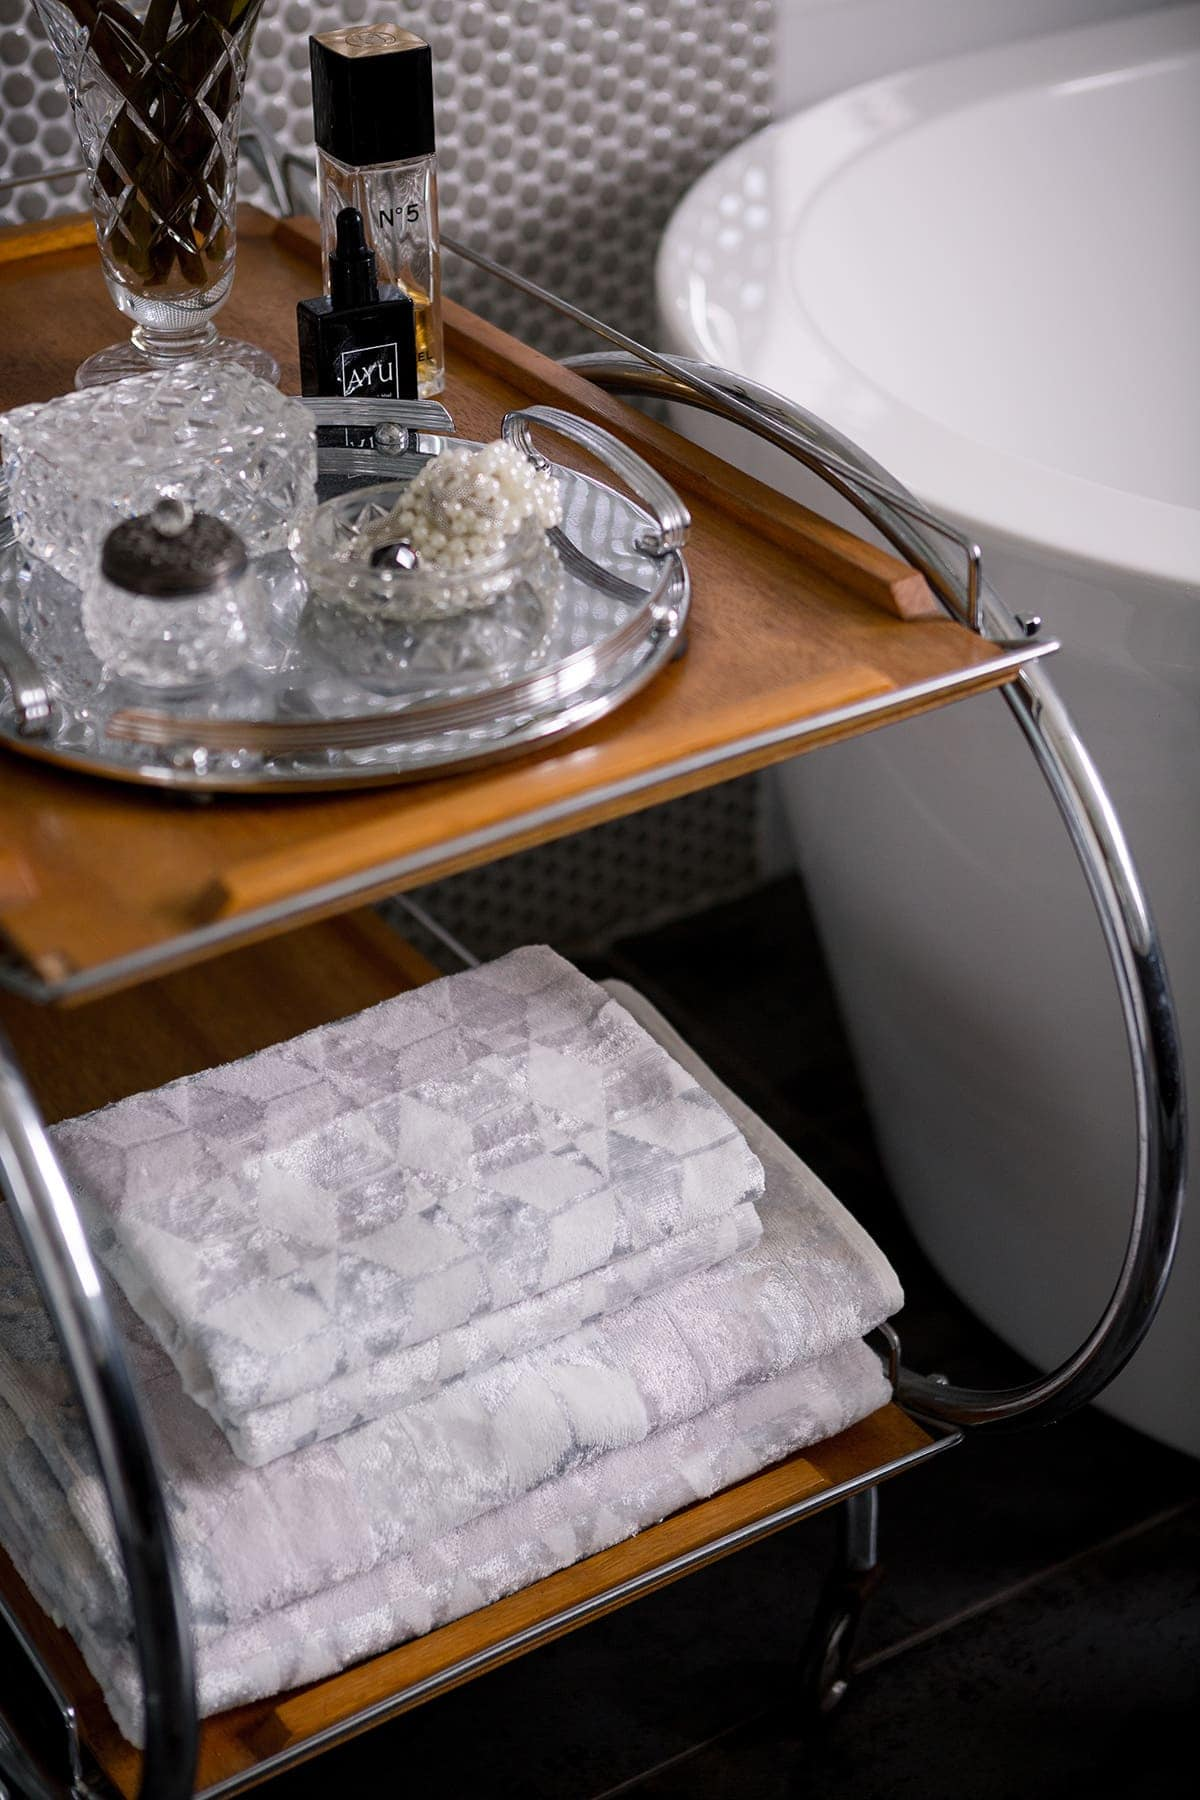 vintage table in bathroom with stack of towels on it